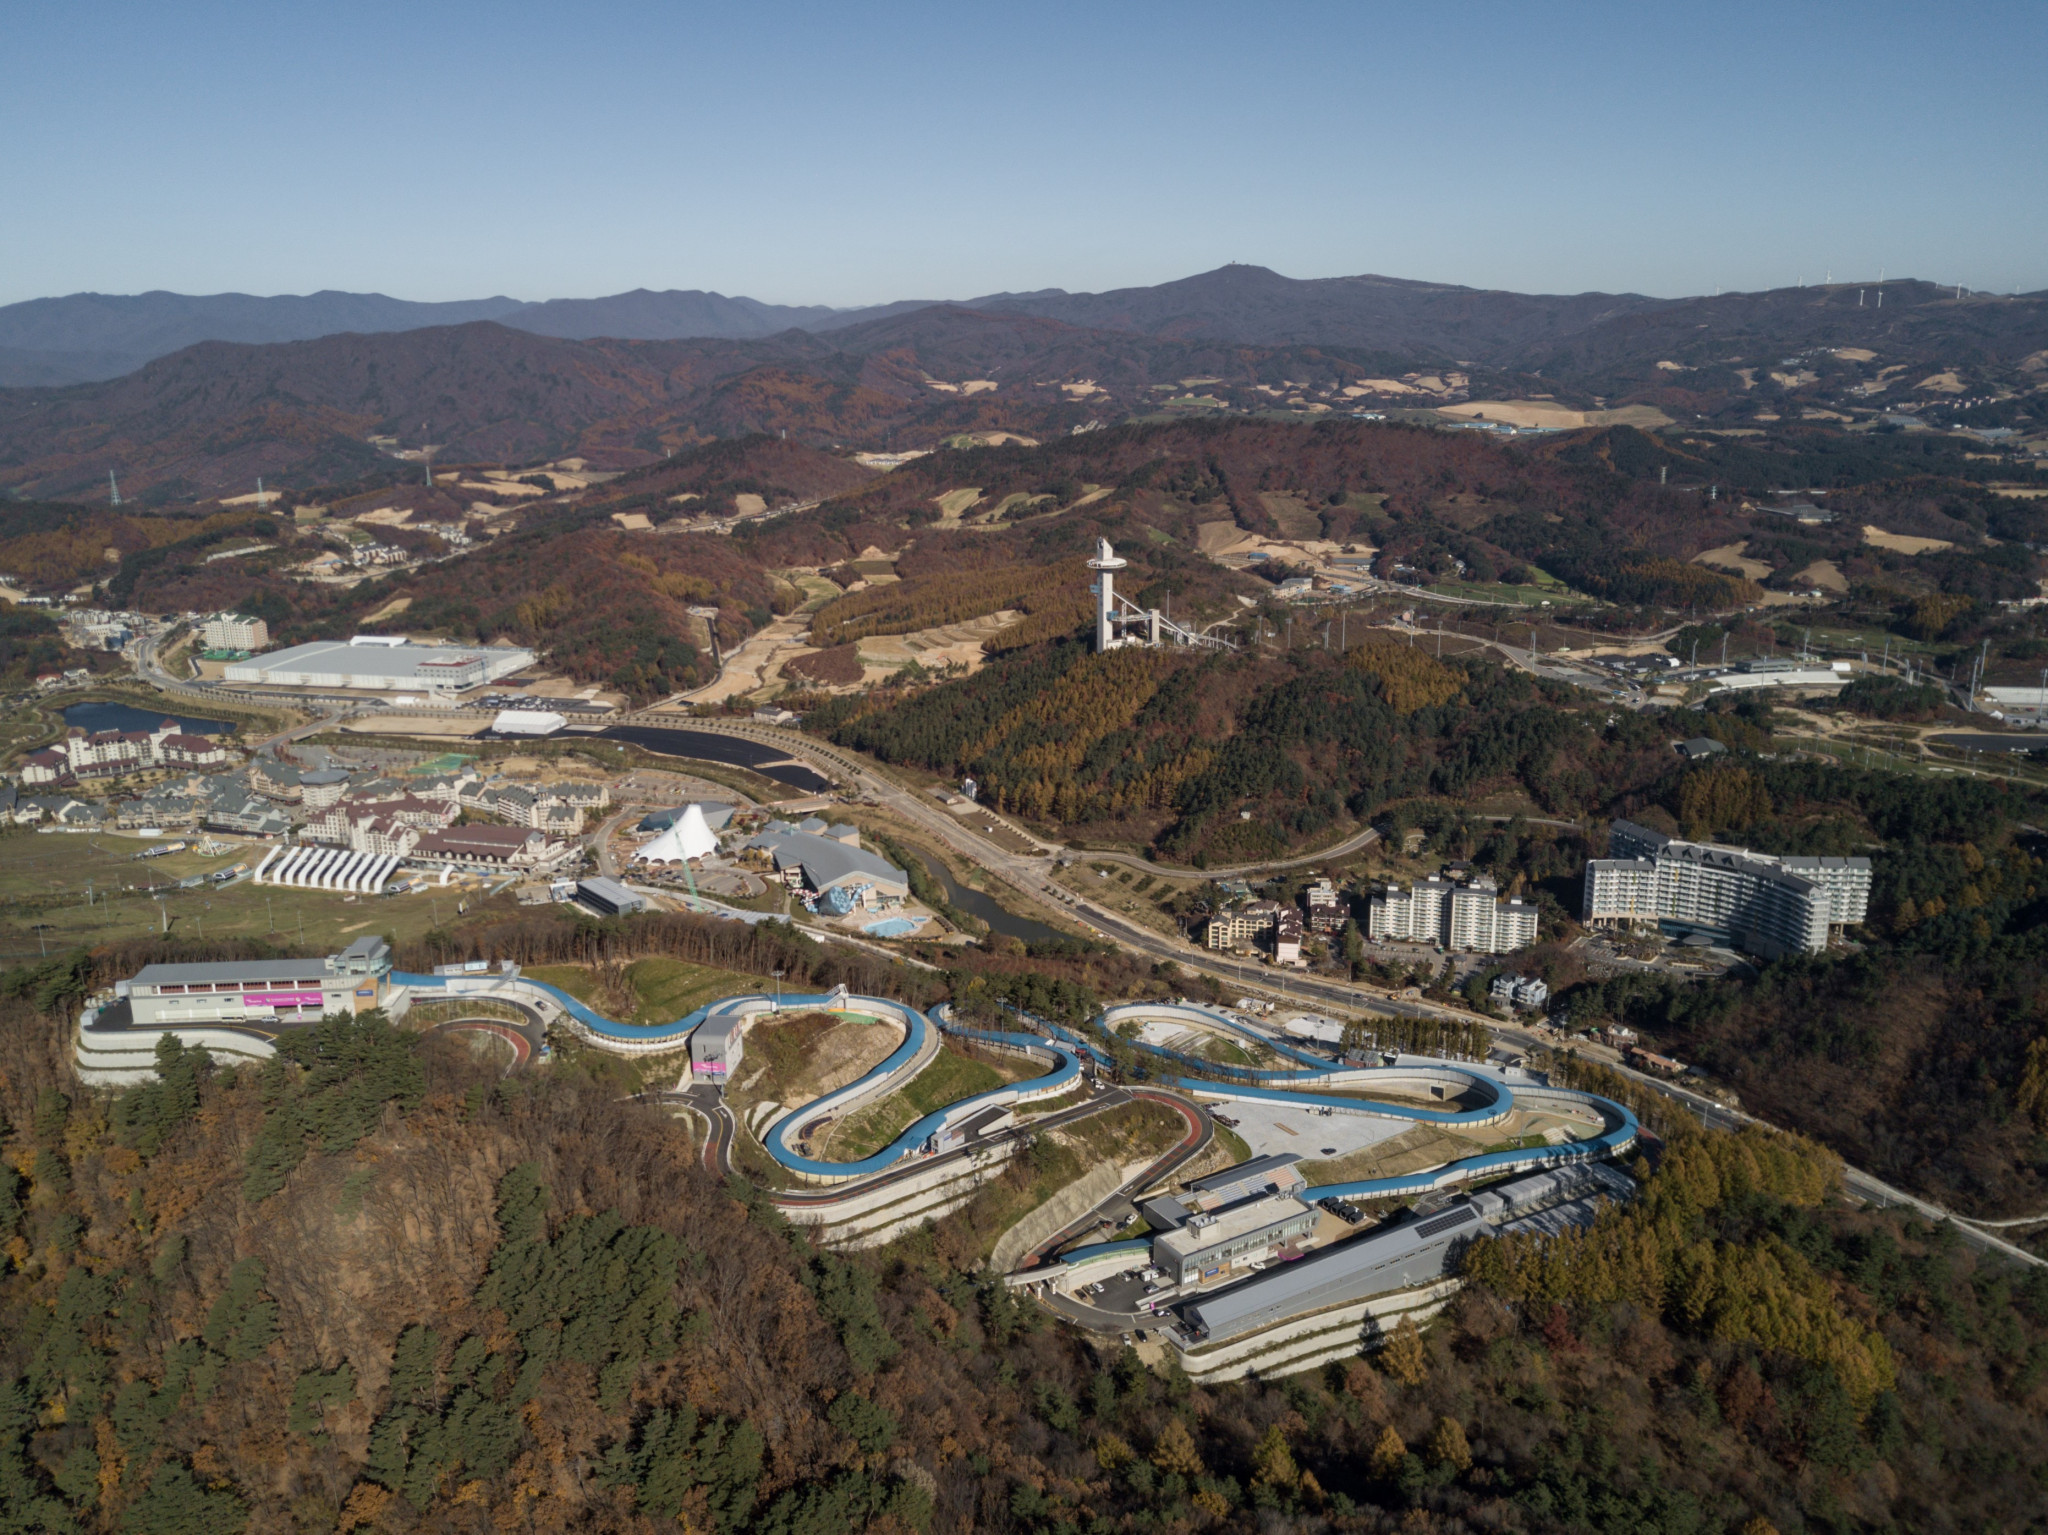 South Korea offer special visa-free entry period to Chinese visitors for Pyeongchang 2018